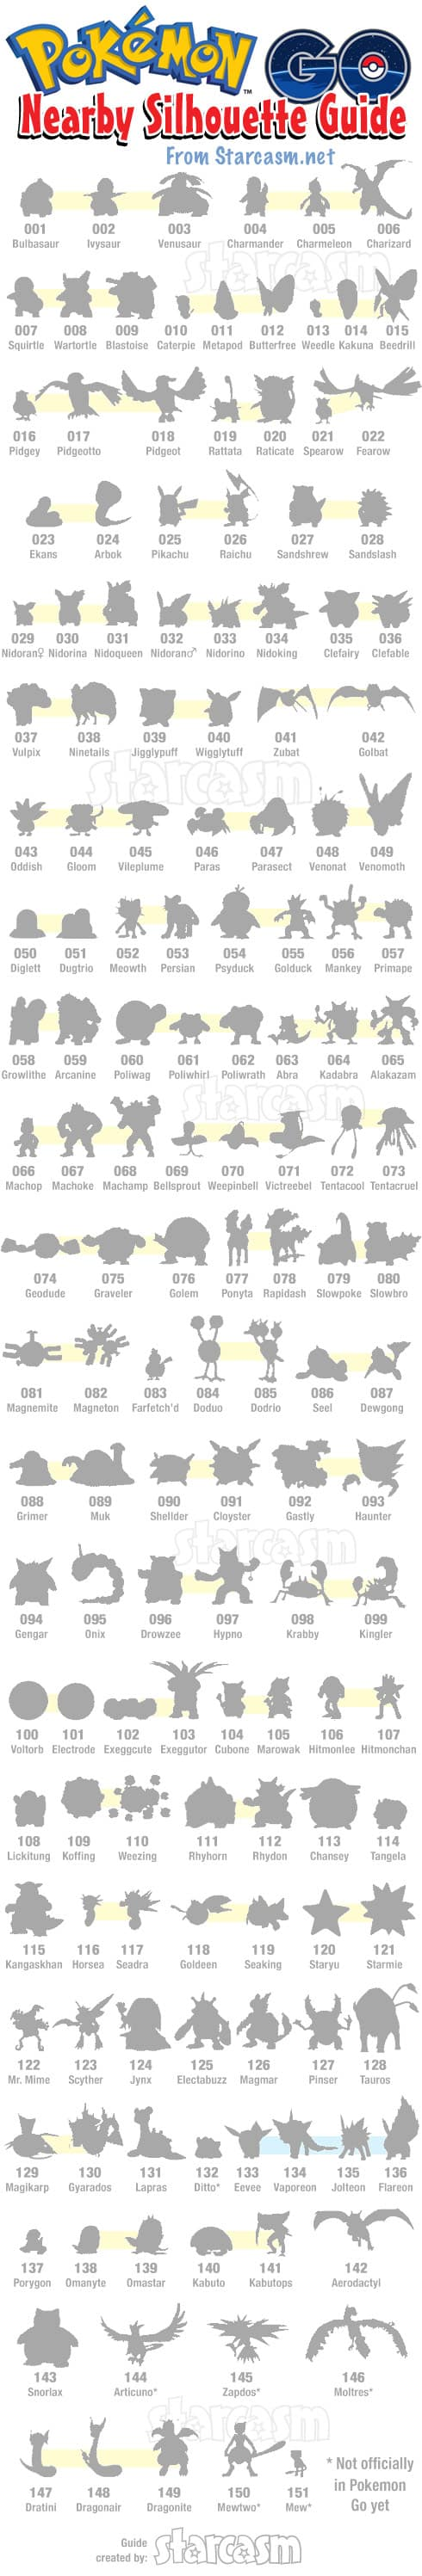 25 best ideas about pokemon moltres on pinterest real pokemon games - Complete Pokemon Go Silhouettes Outlines Nearby Guide